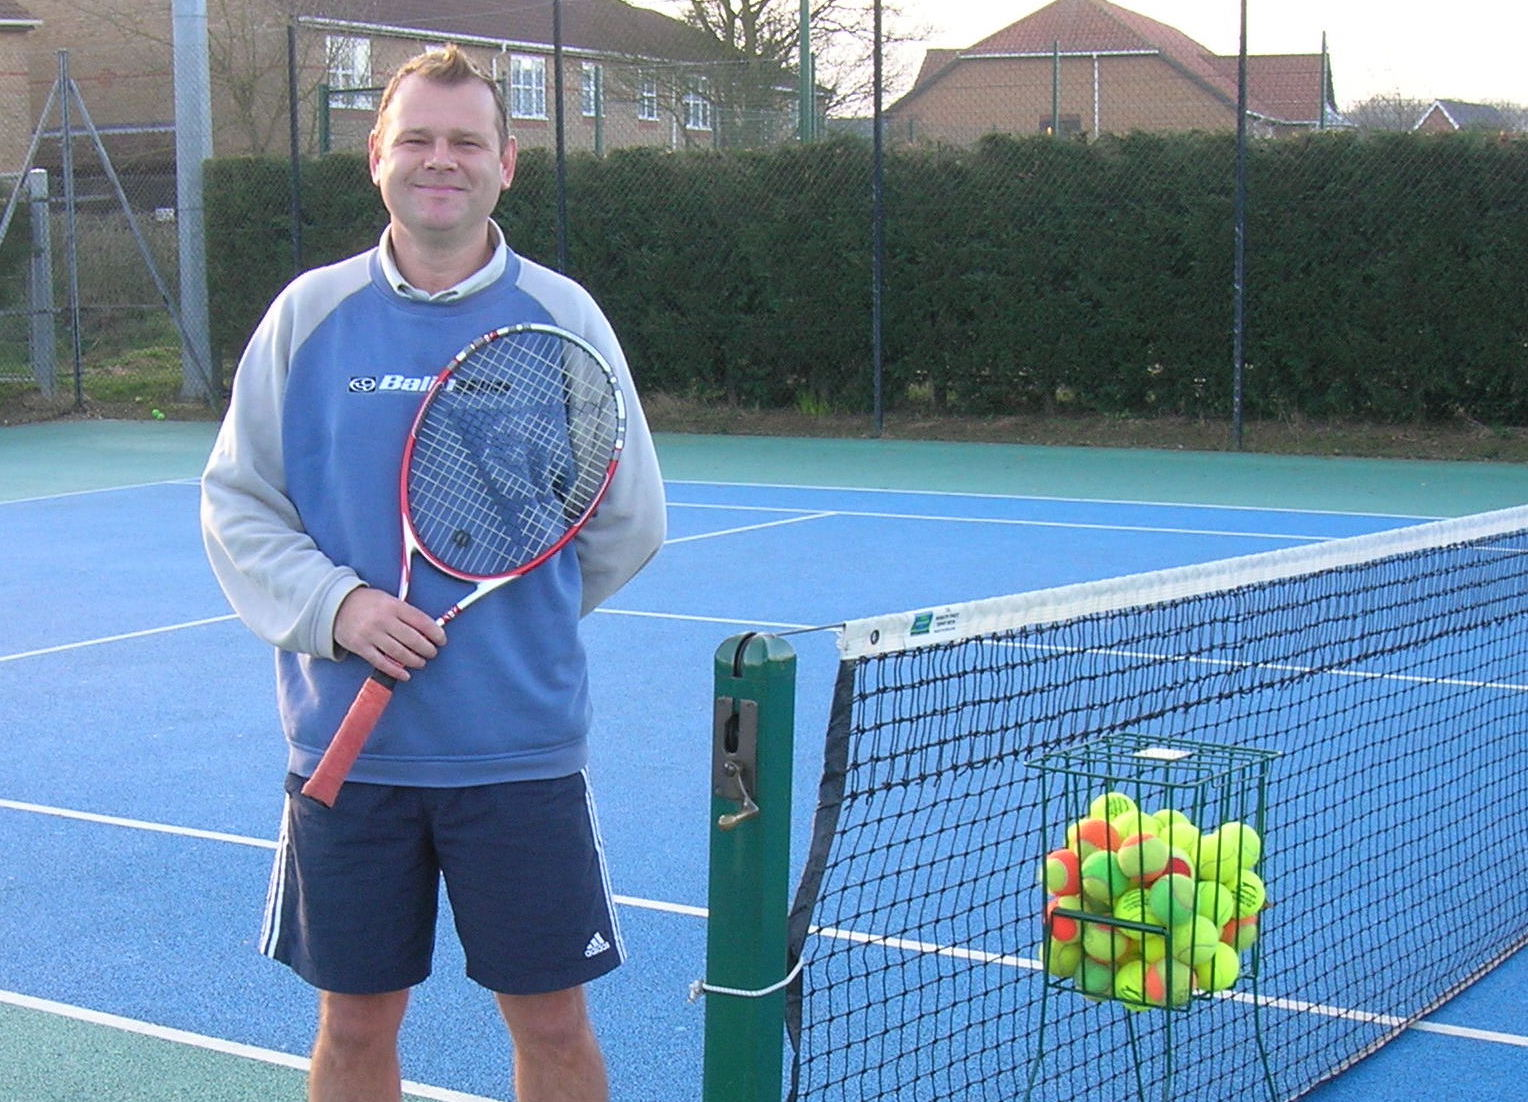 Martin Denny, development coach at Woodbridge Tennis Club